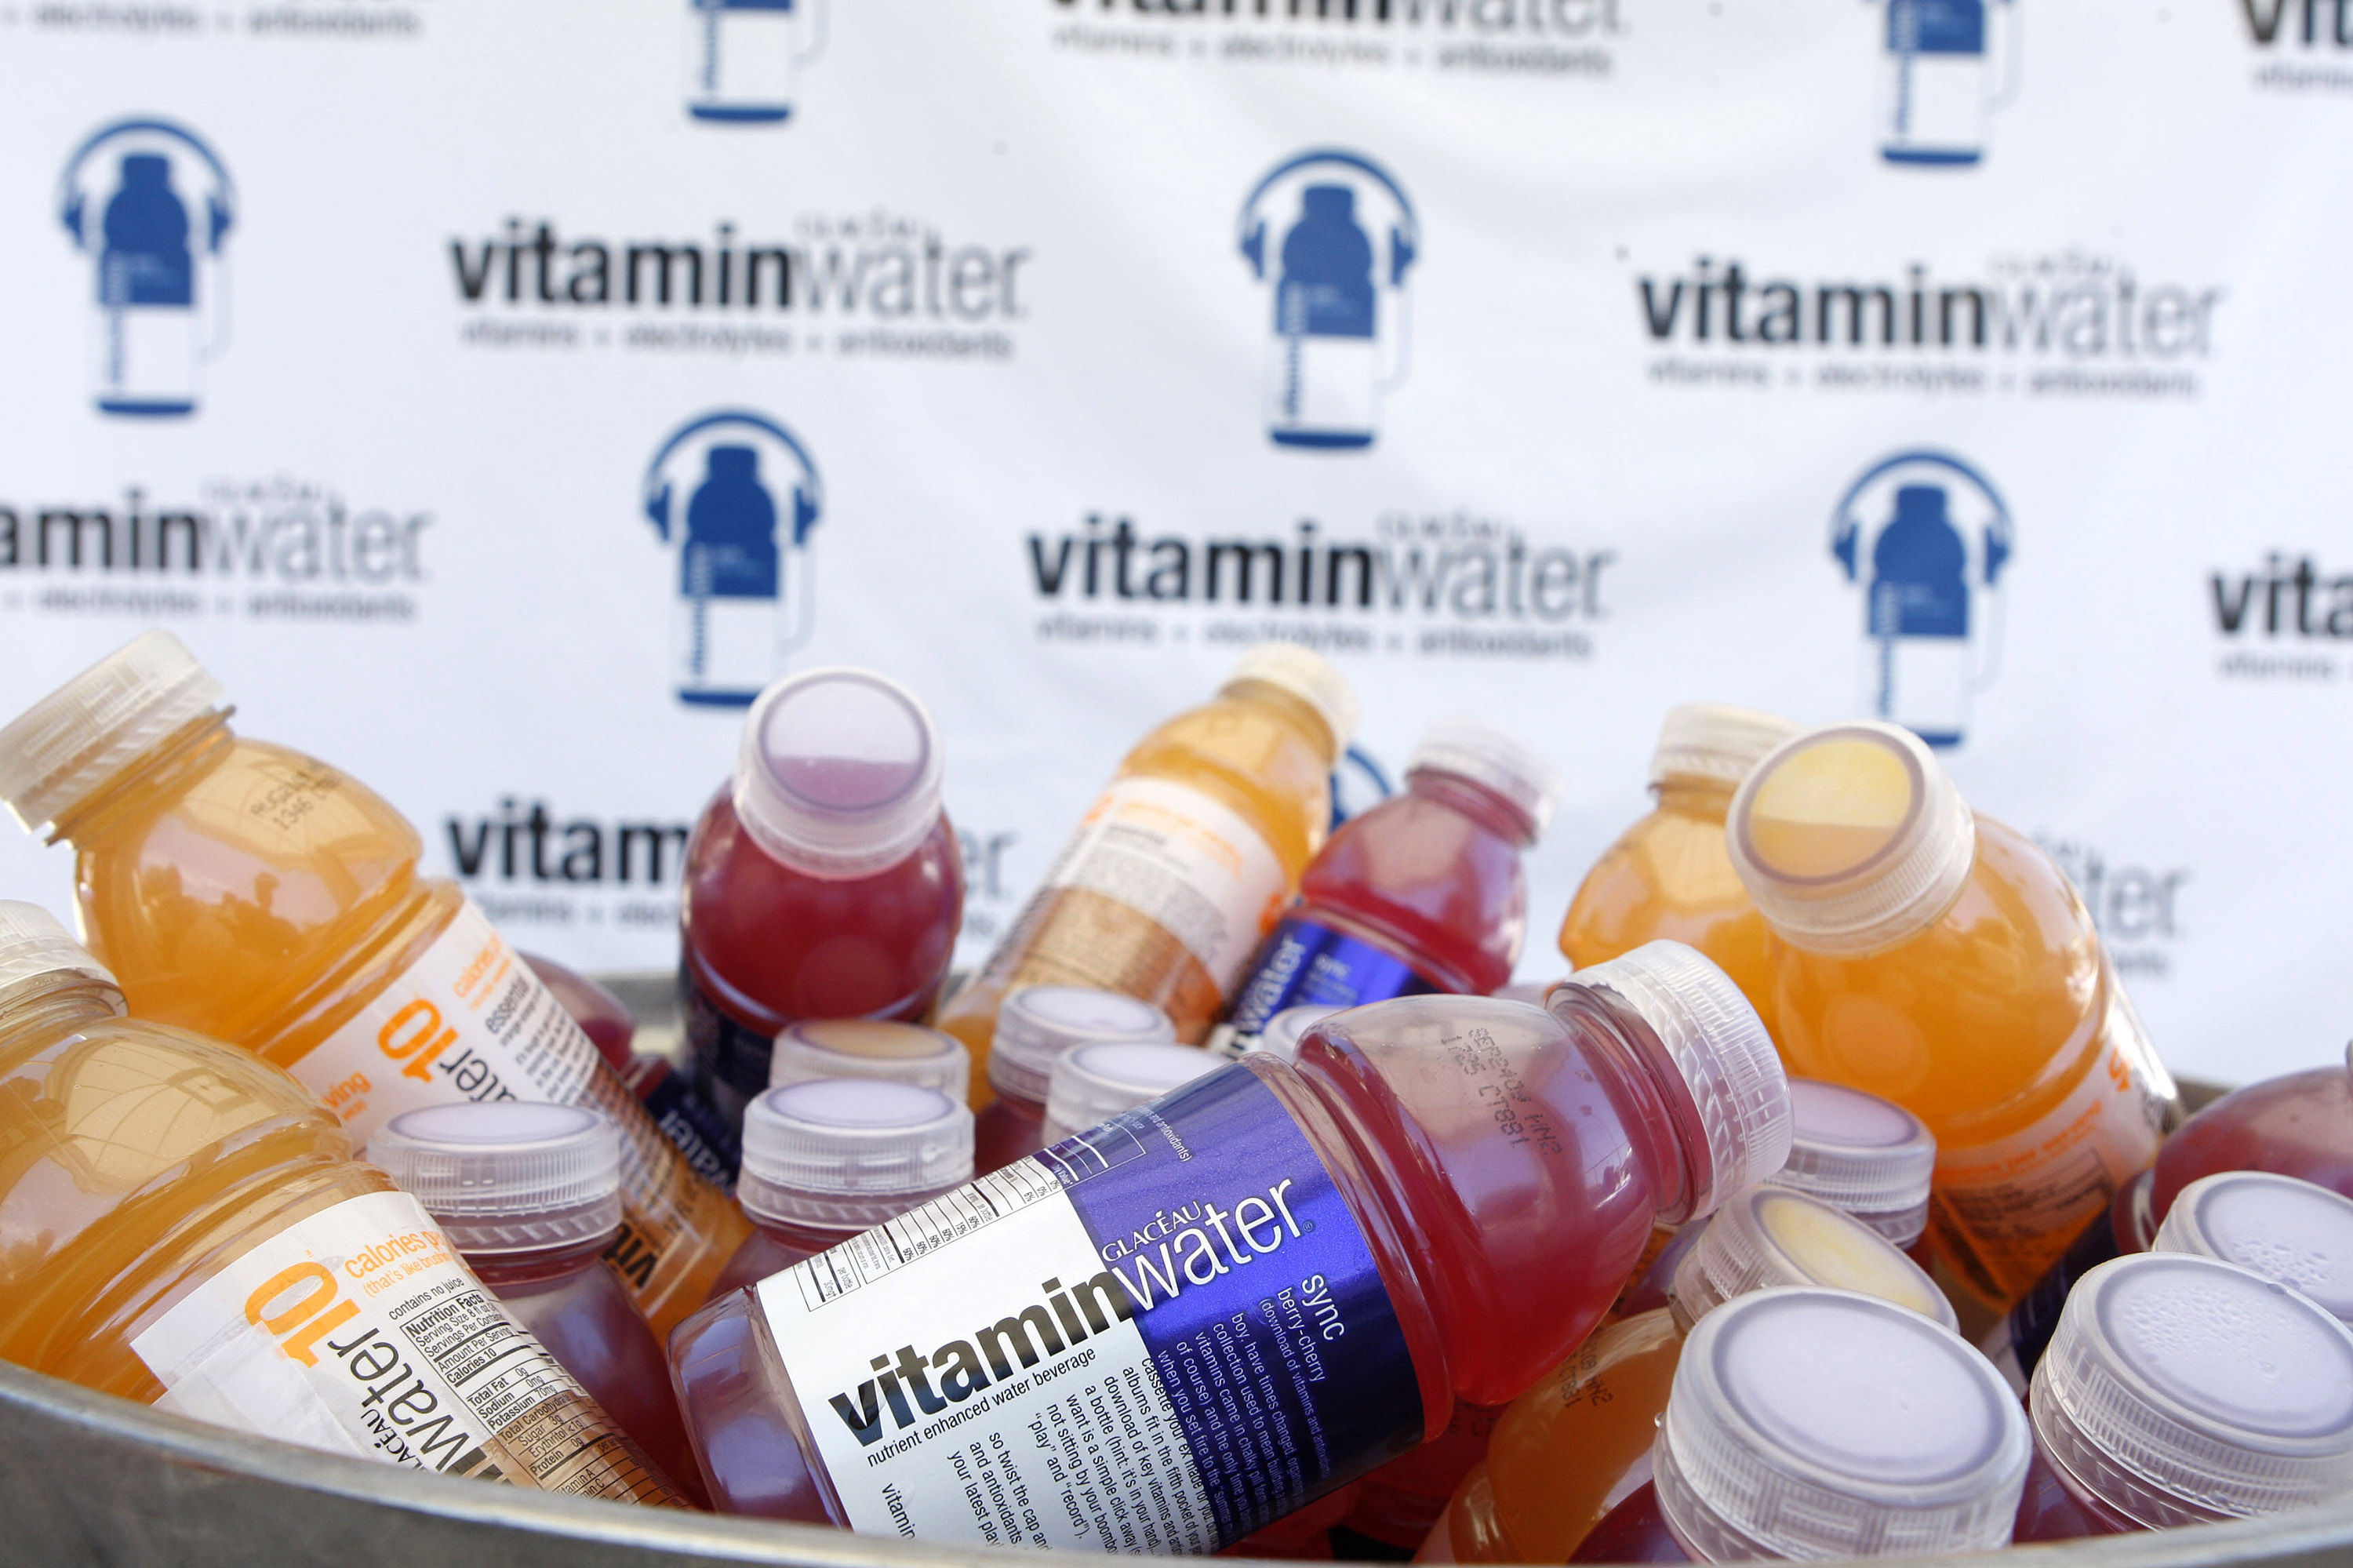 Vitaminwater Sync's The Good Life - Day 2